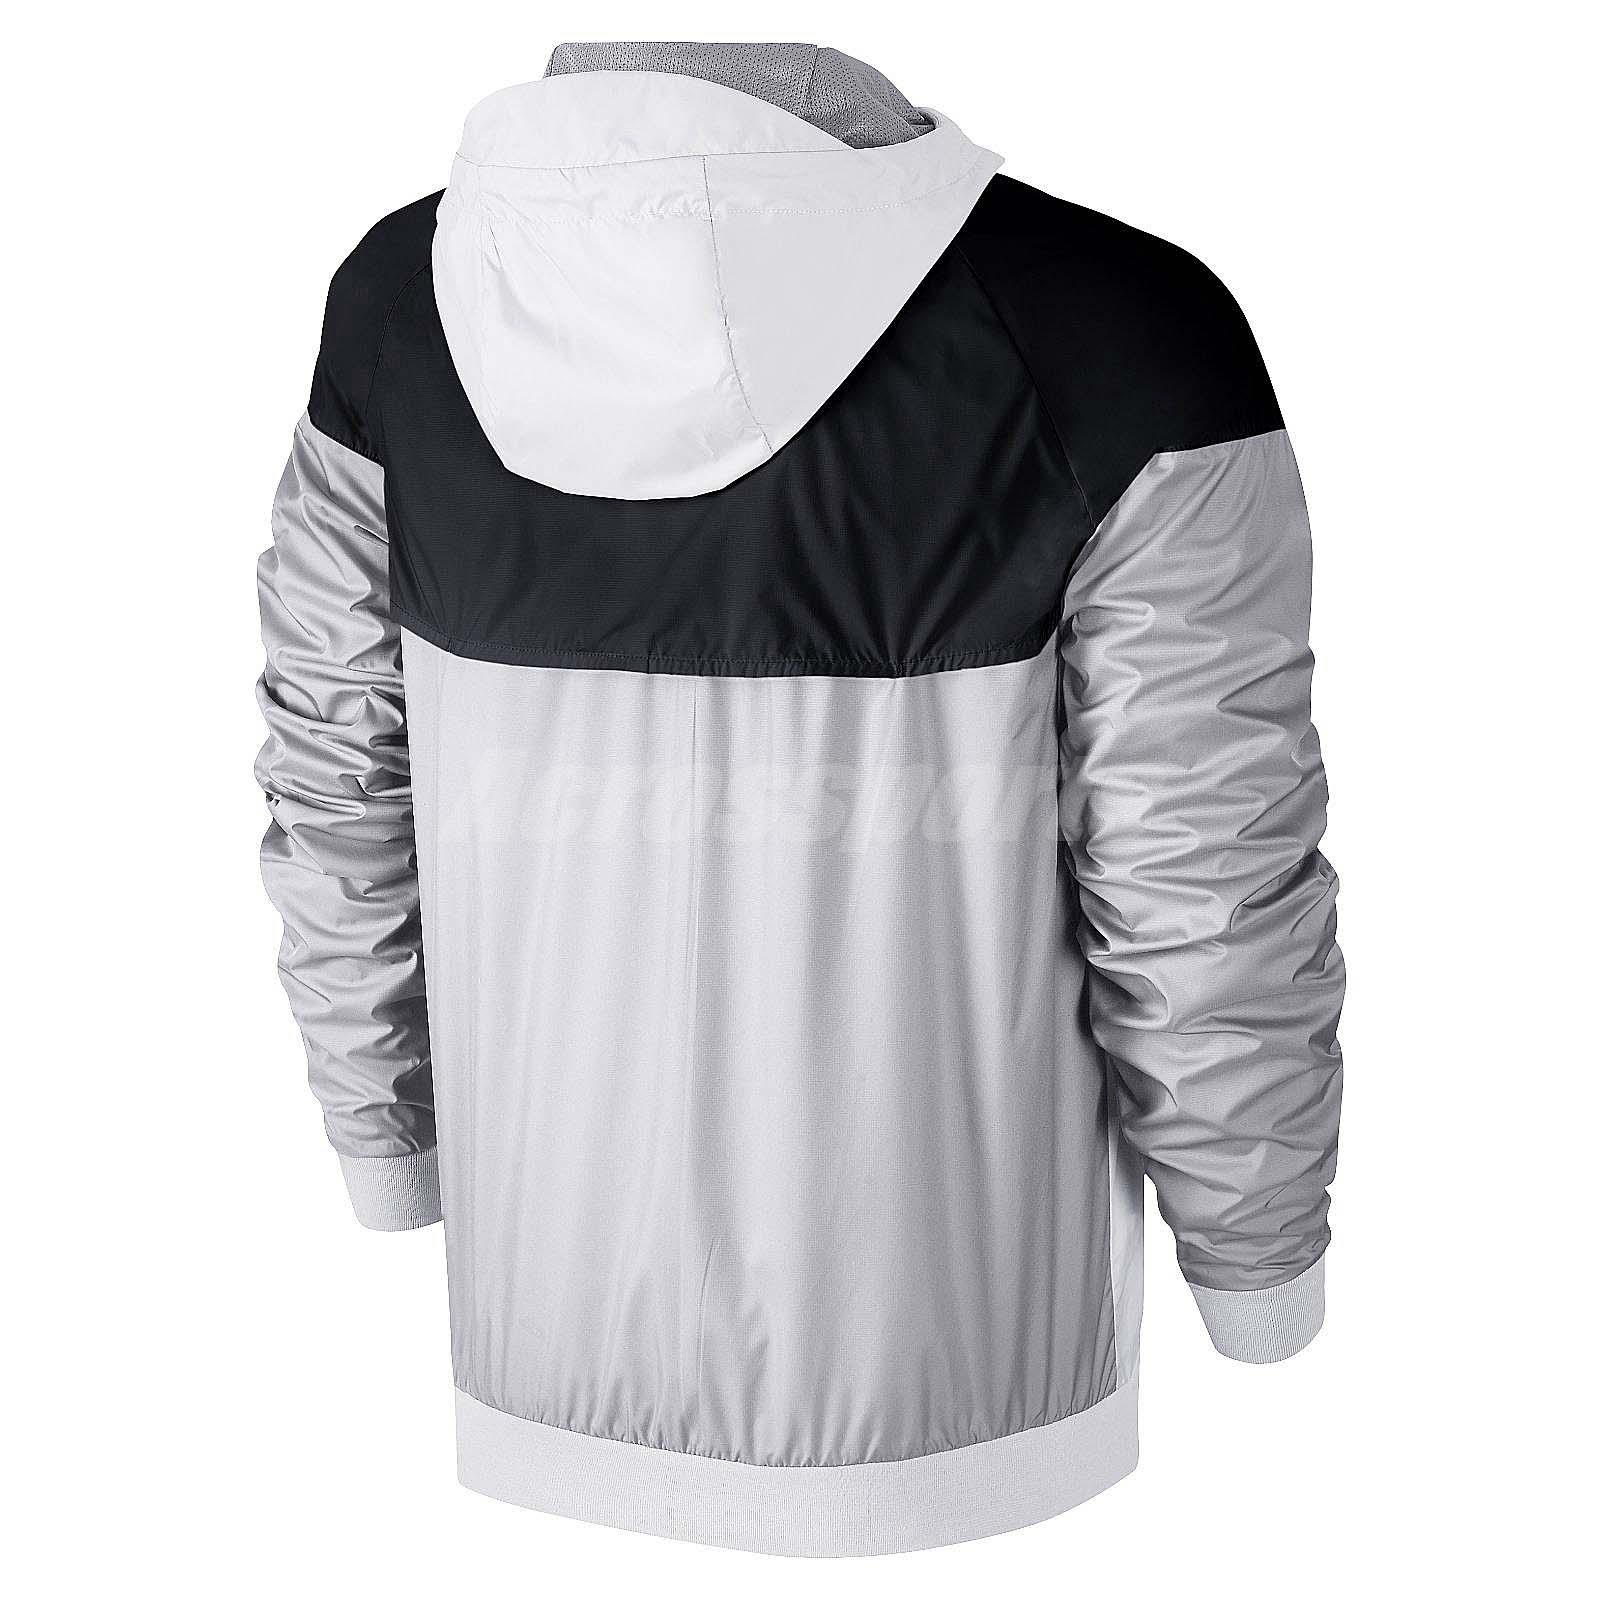 Nike jacket grey and white - Condition Brand New With Tags